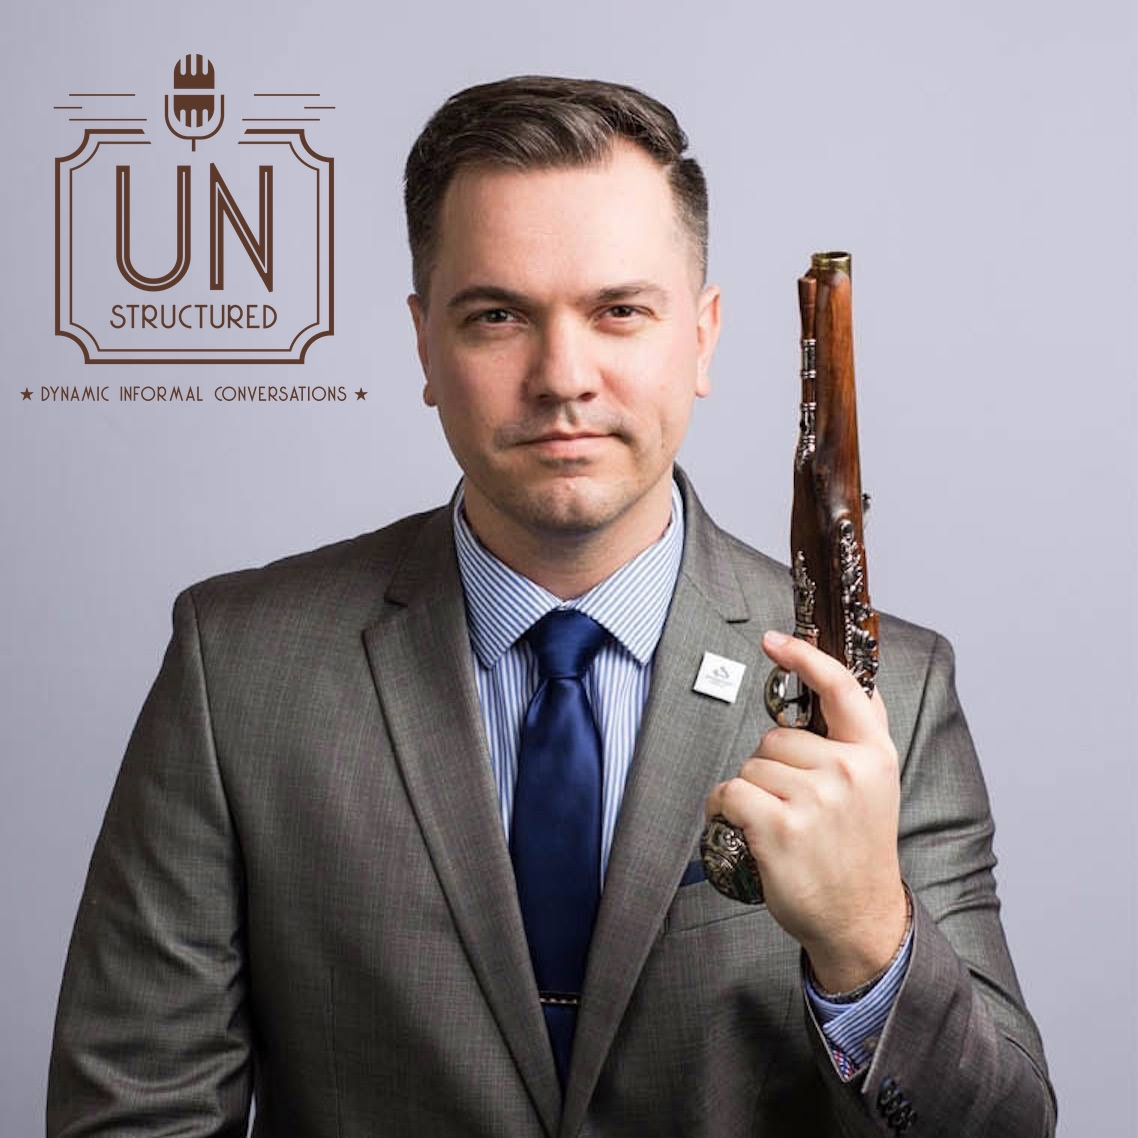 025 - Austin Petersen - Unique wide-ranging and well-researched unstructured interviews hosted by Eric Hunley UnstructuredPod Dynamic Informal Conversations